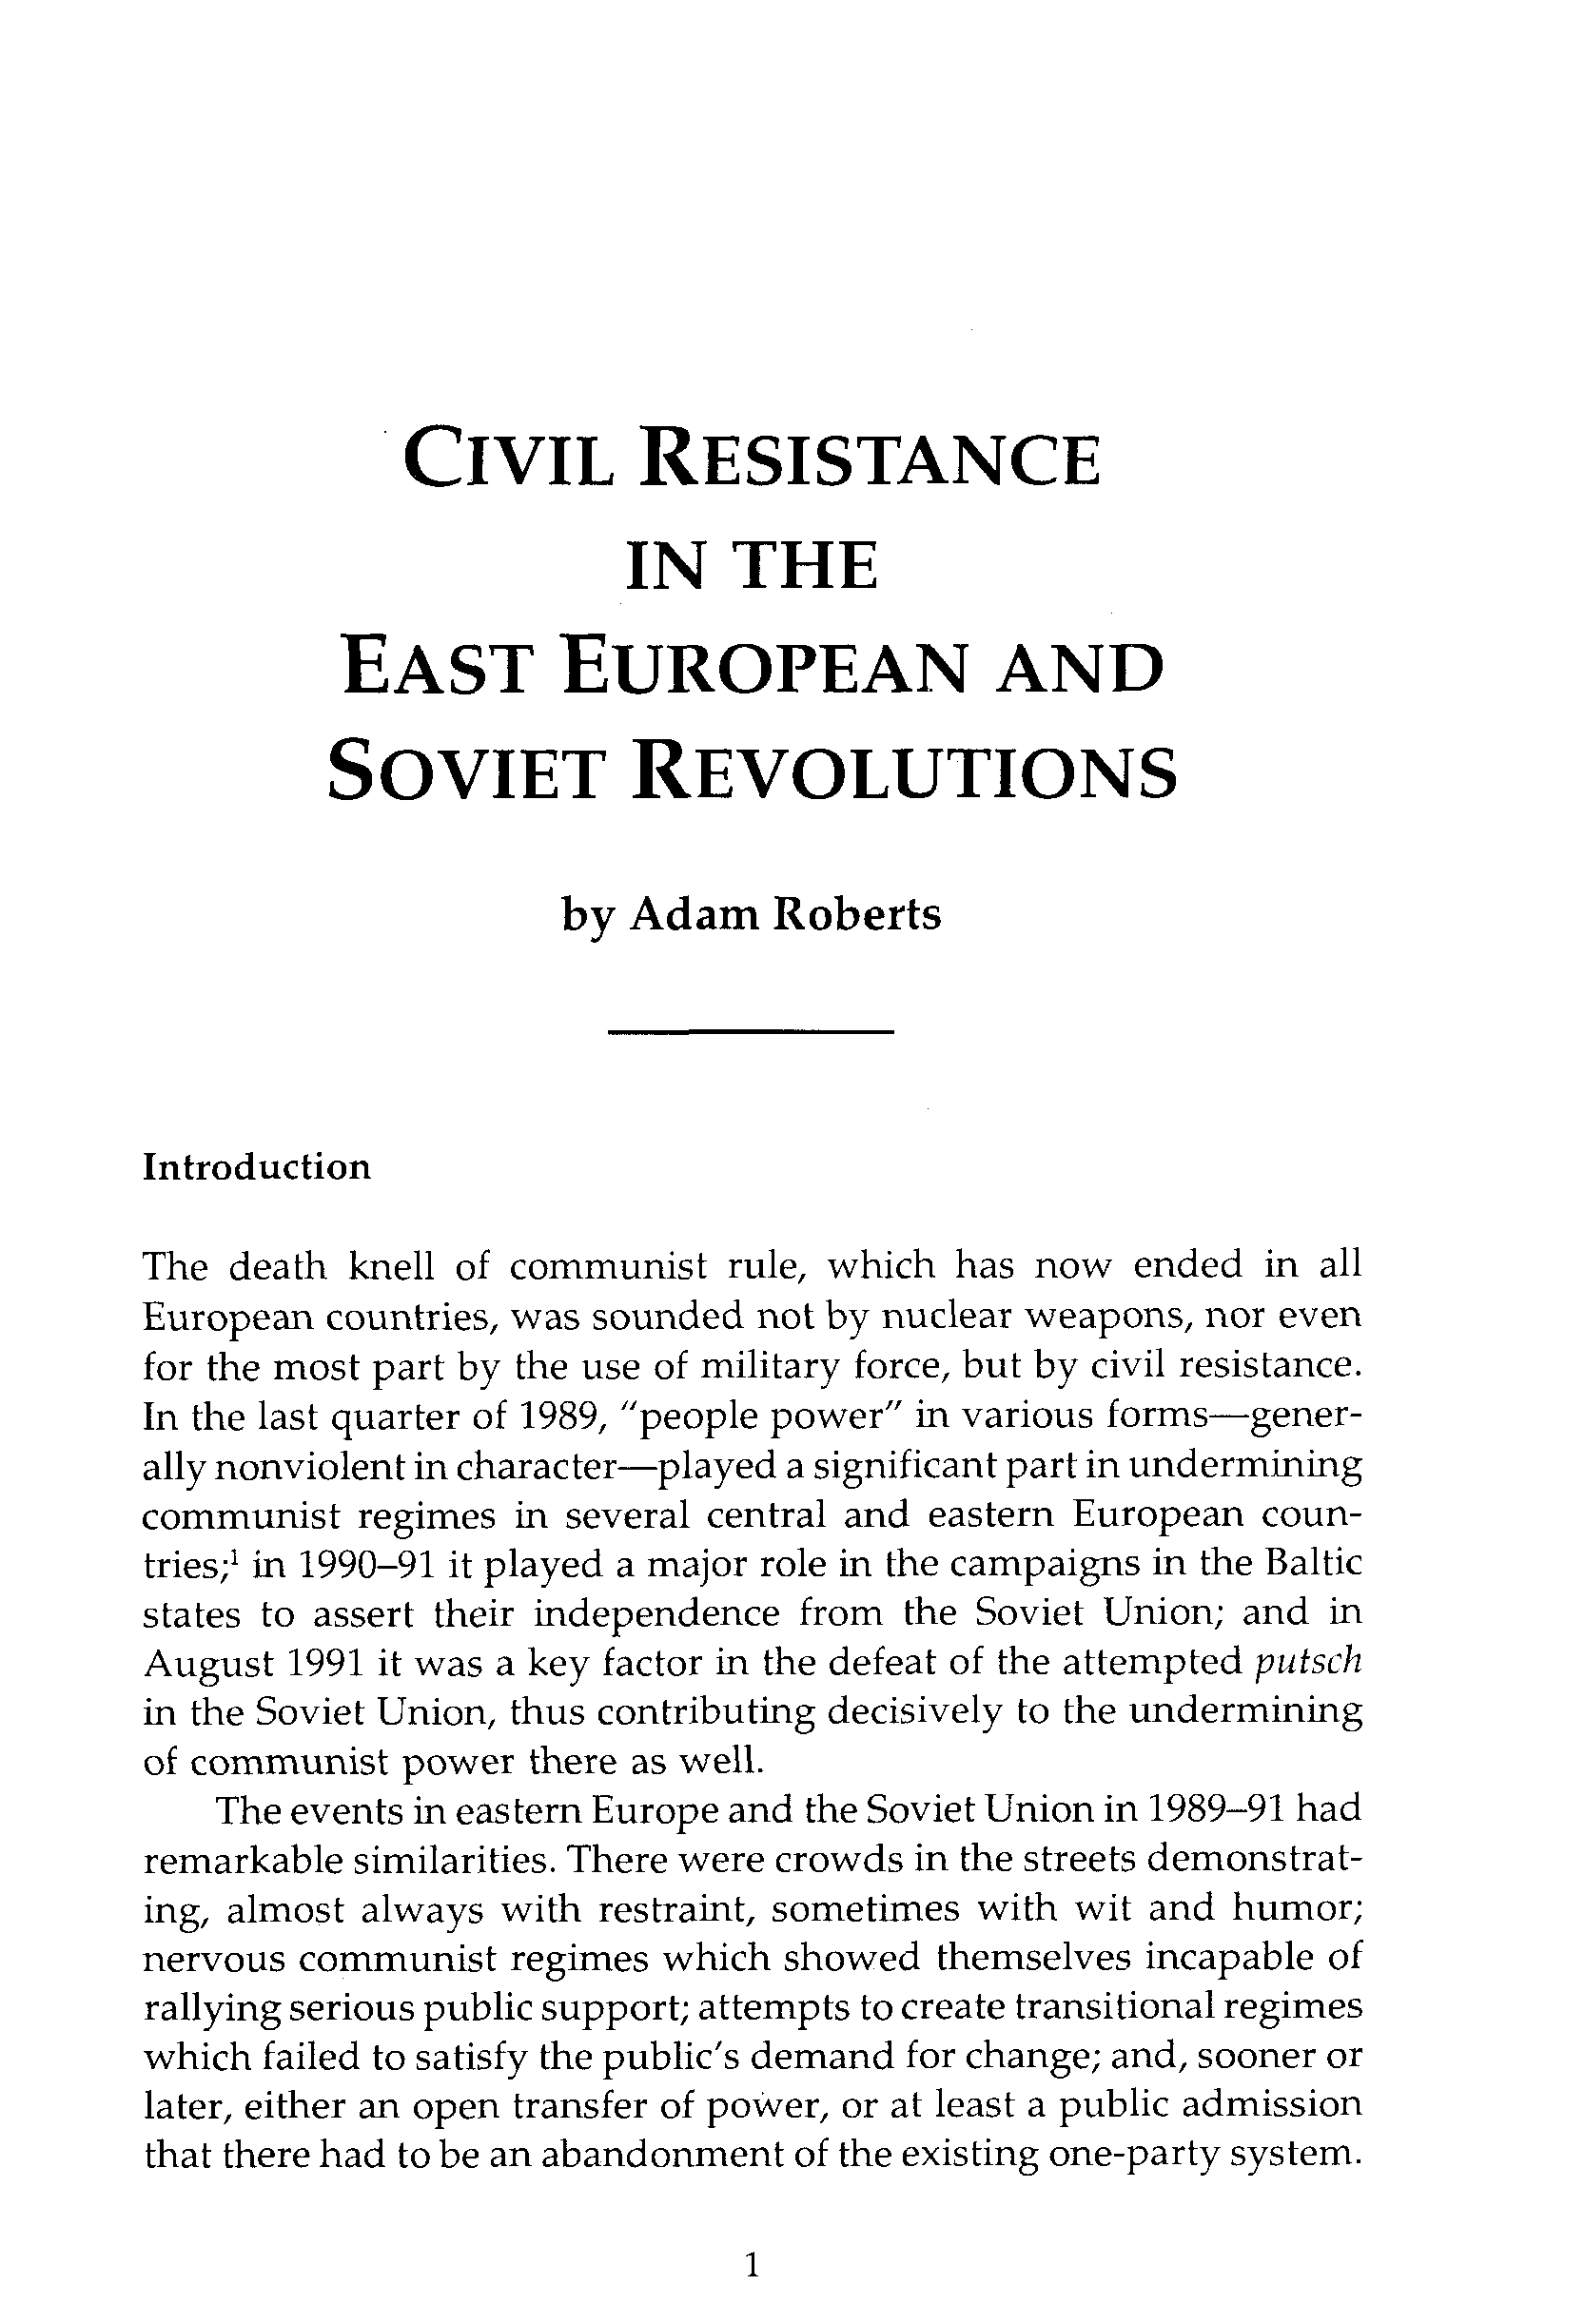 Civil Resistance in the East European and Soviet Revolutions